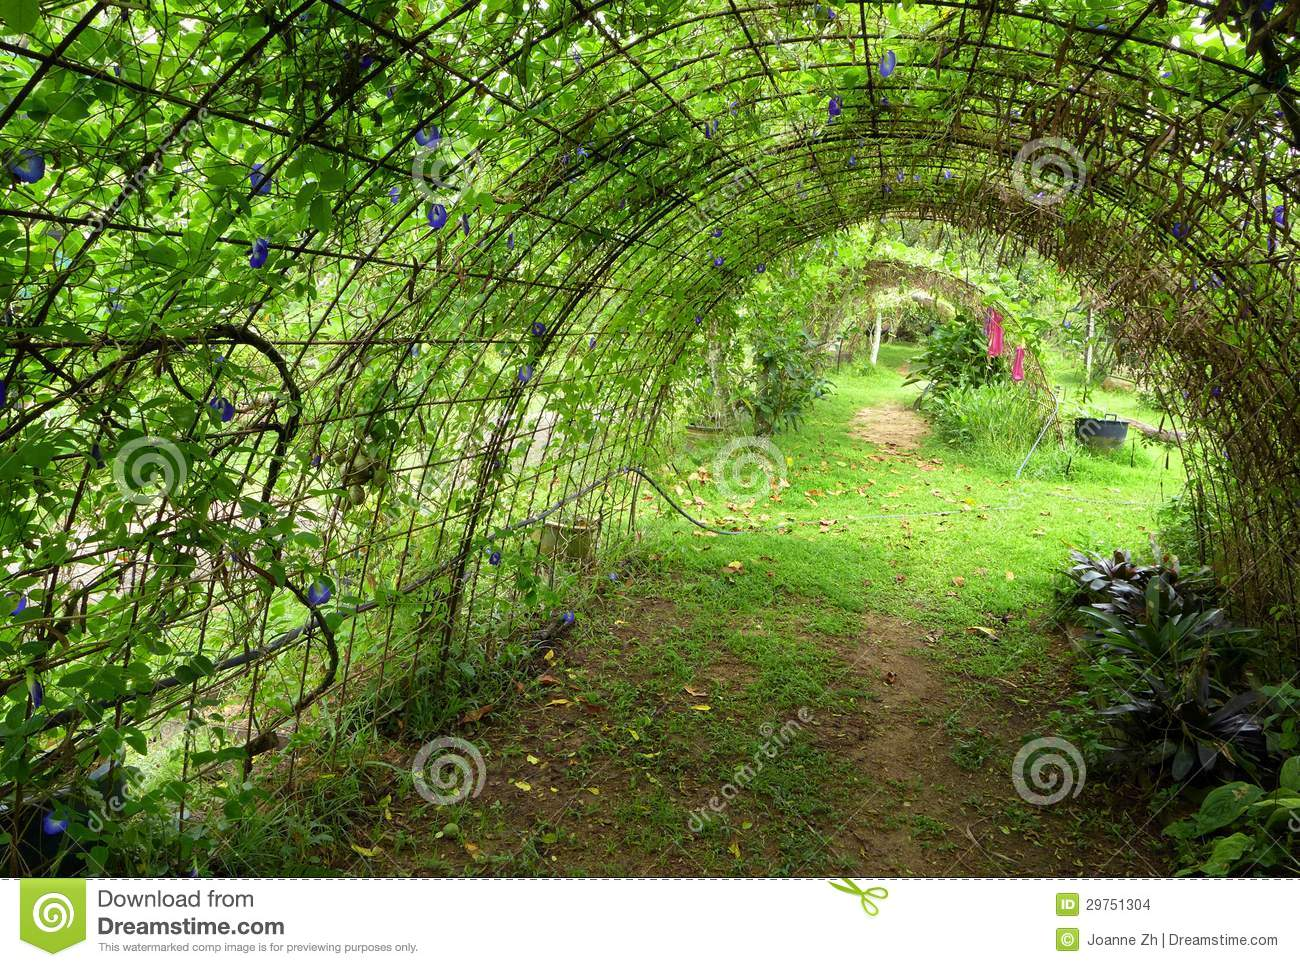 Planting frame pea plant organic farm stock photo for Dream plants for the natural garden